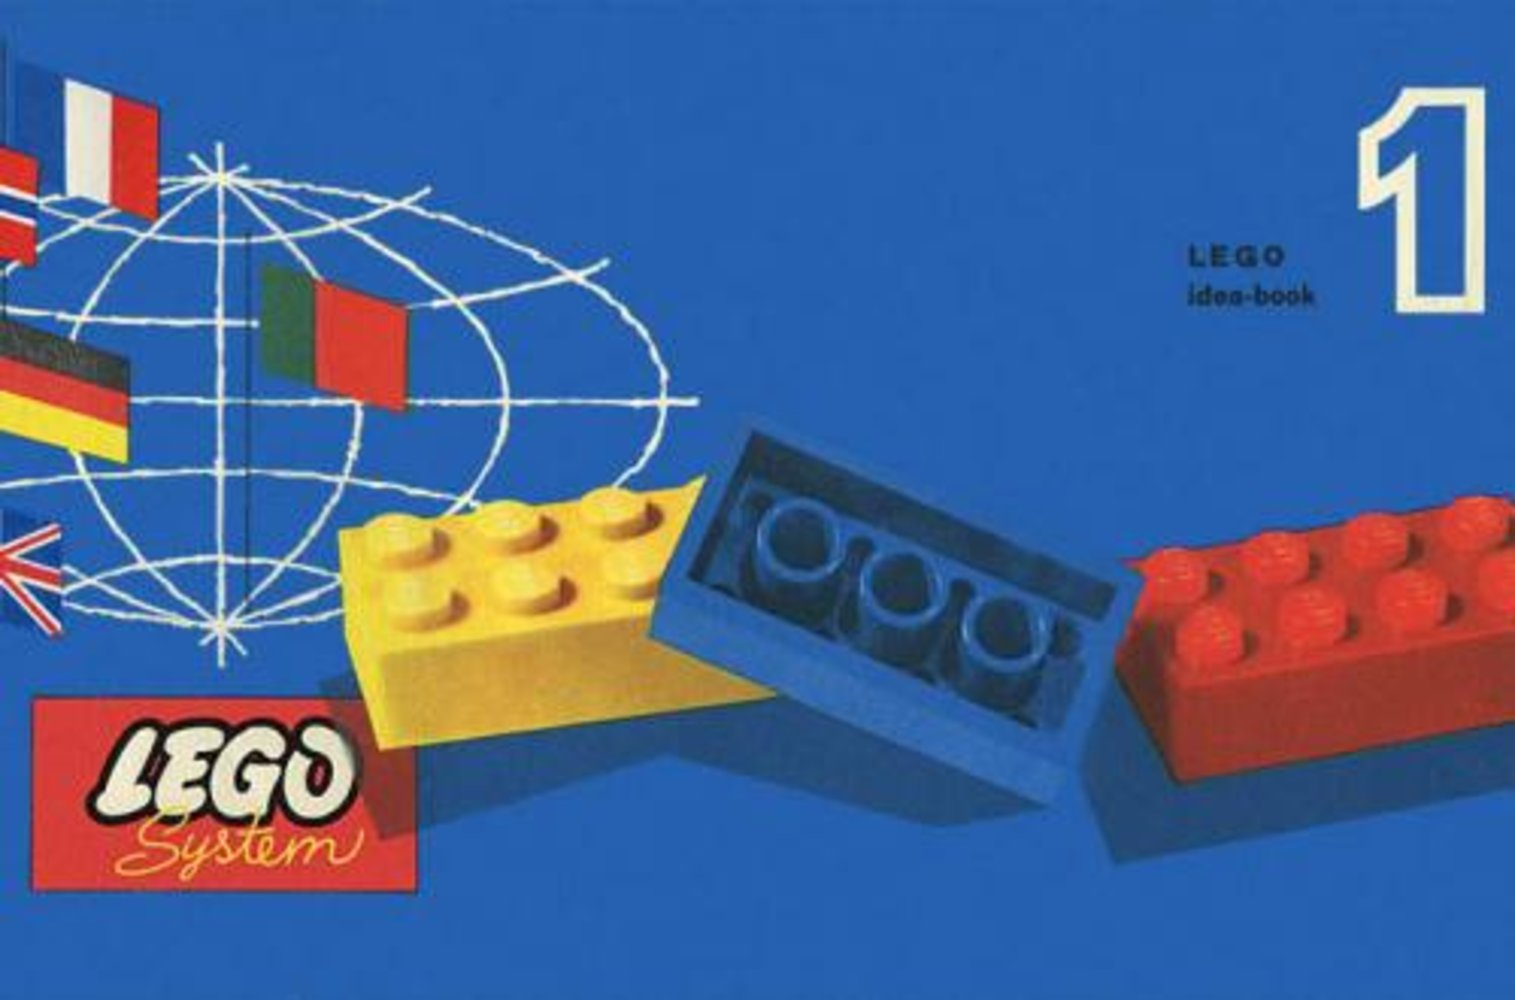 Lego System Idea Book (by Samsonite)